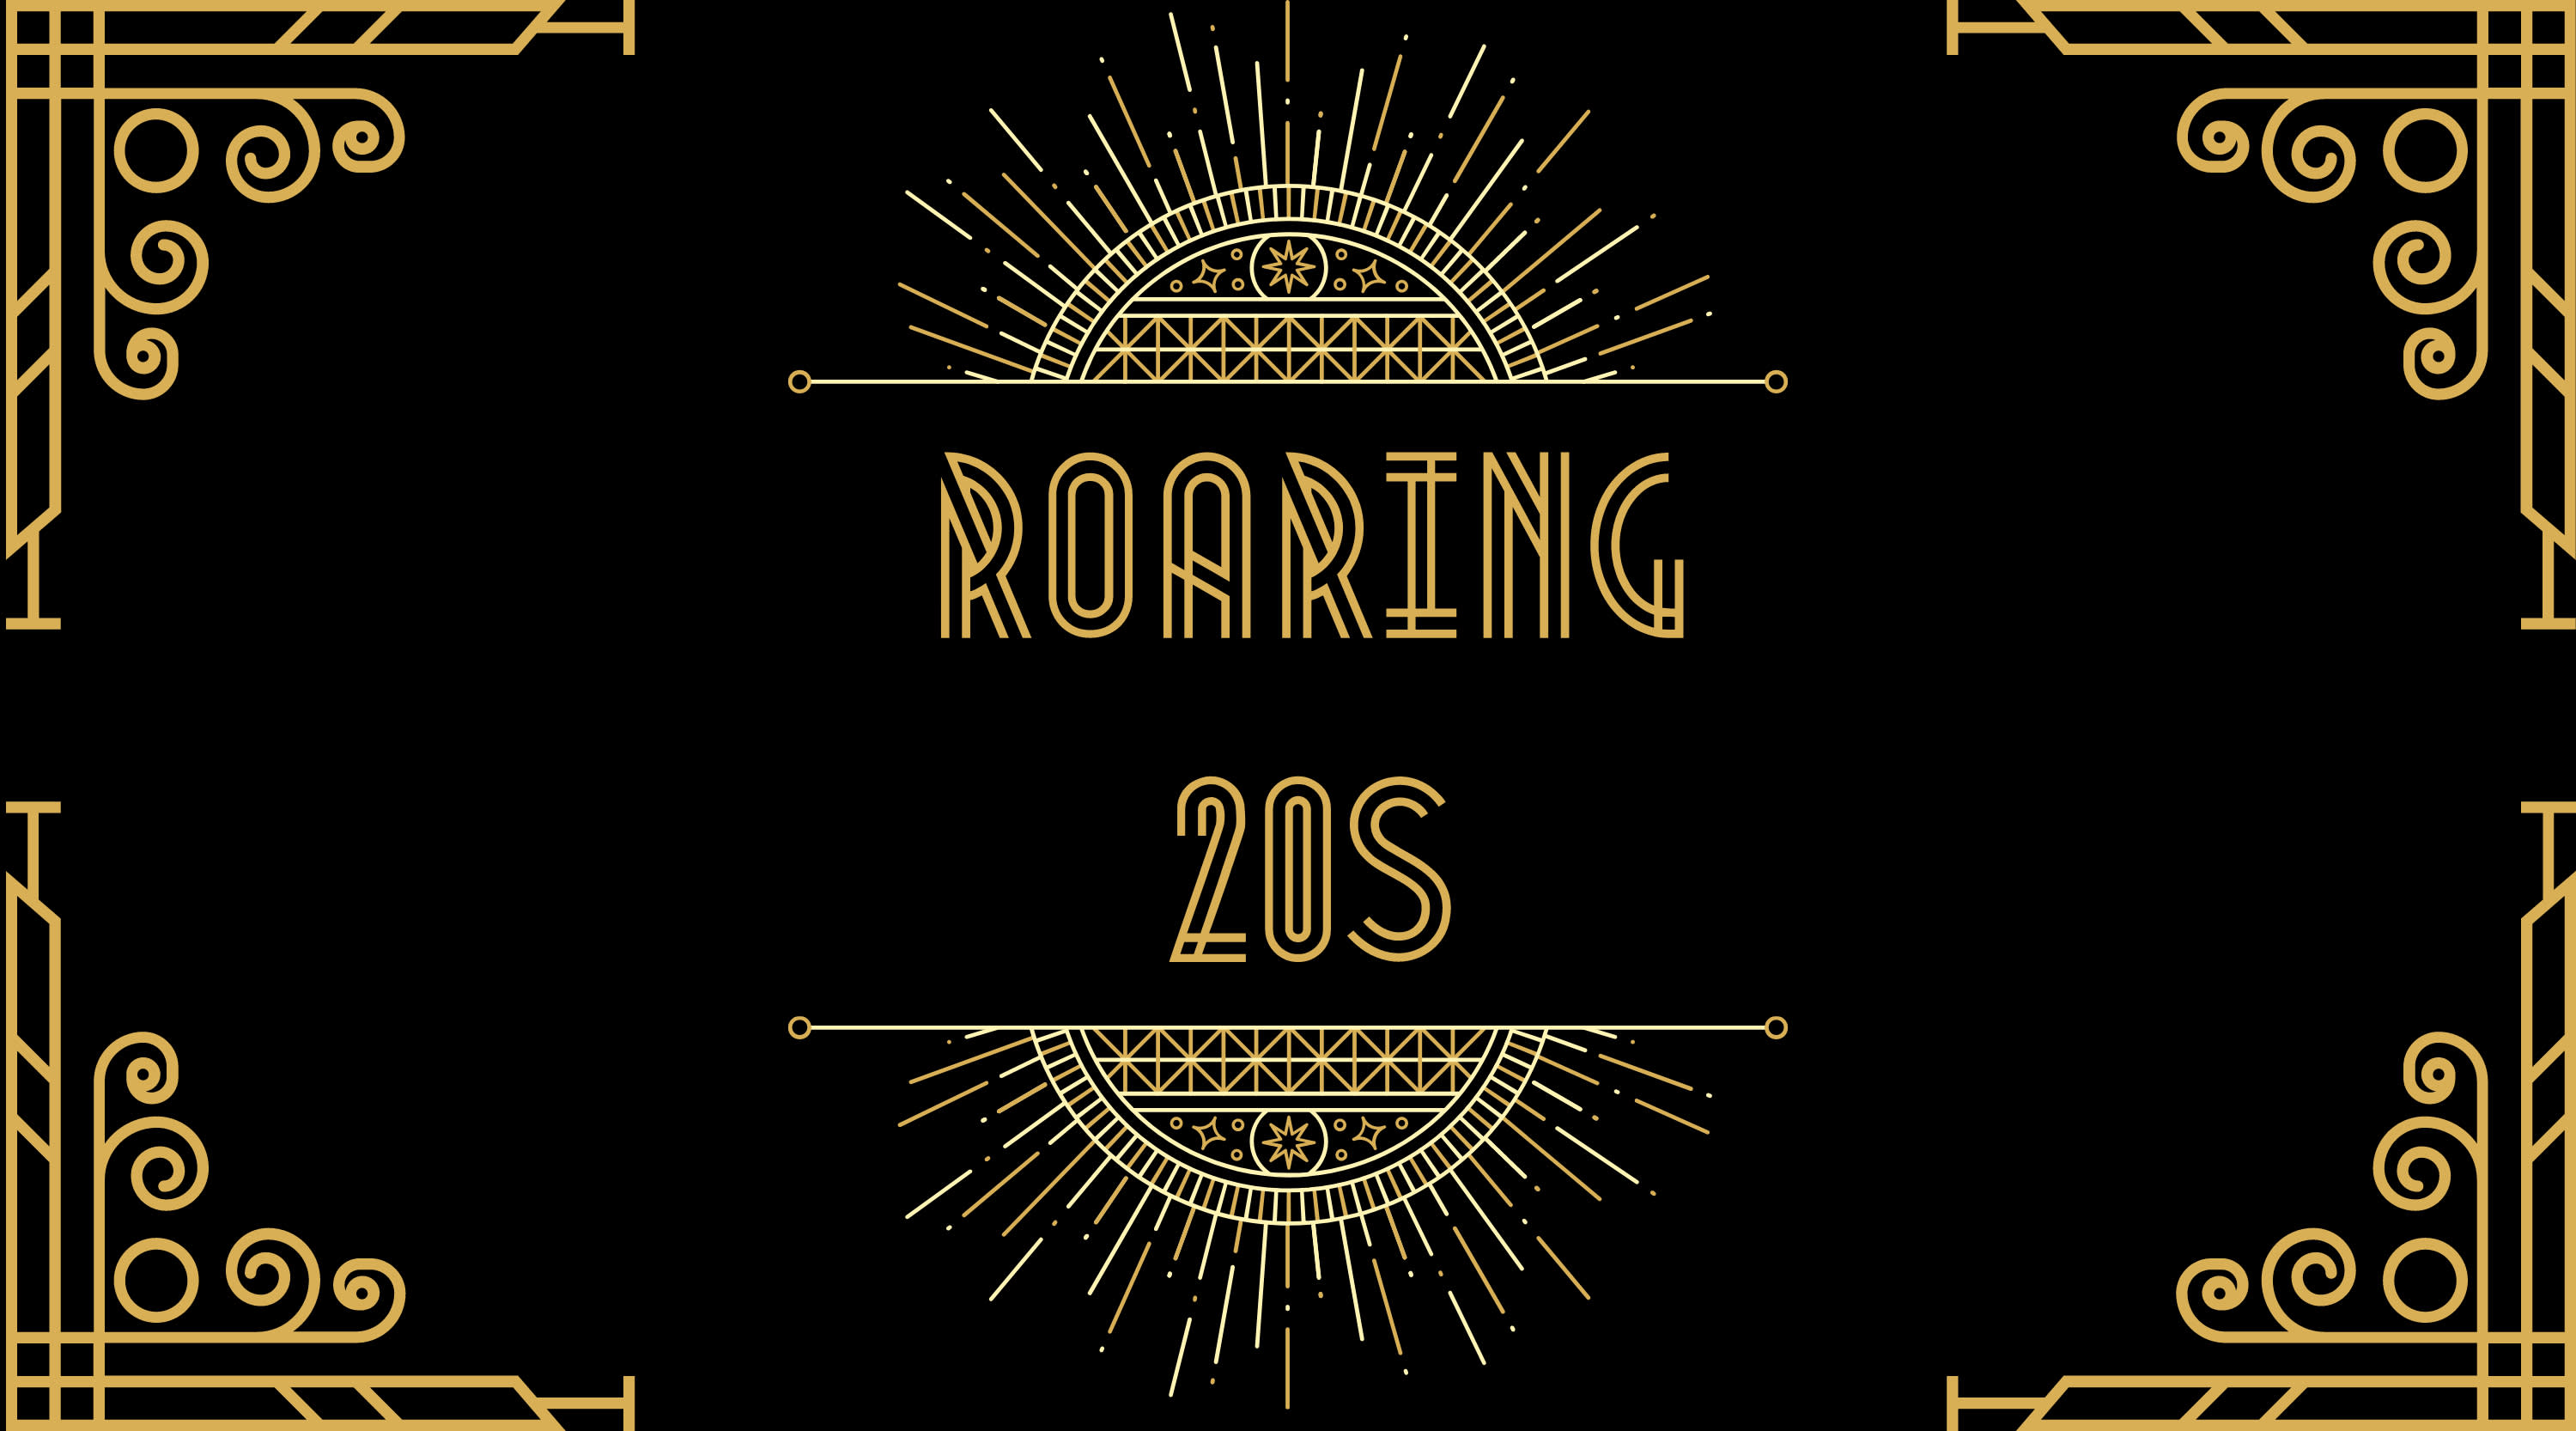 Decade Special: The Roaring 20s